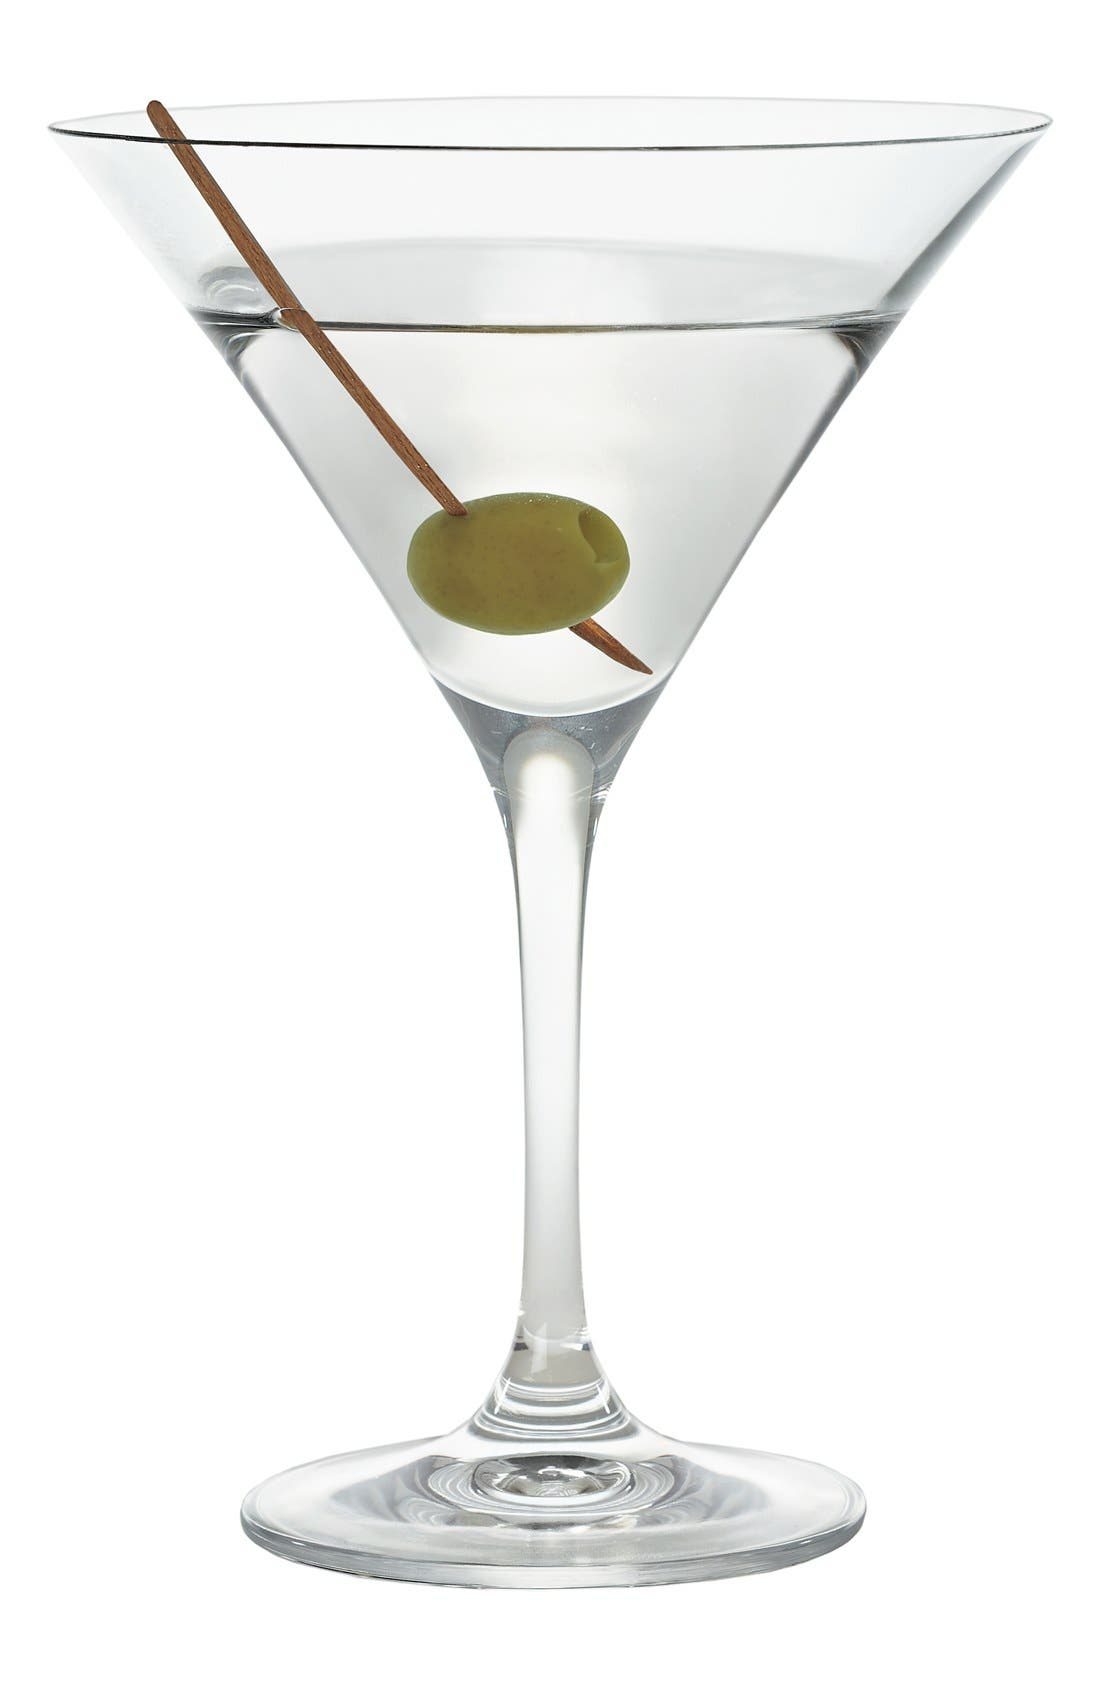 Nordstrom at Home Madrona Set of 4 Martini Glasses